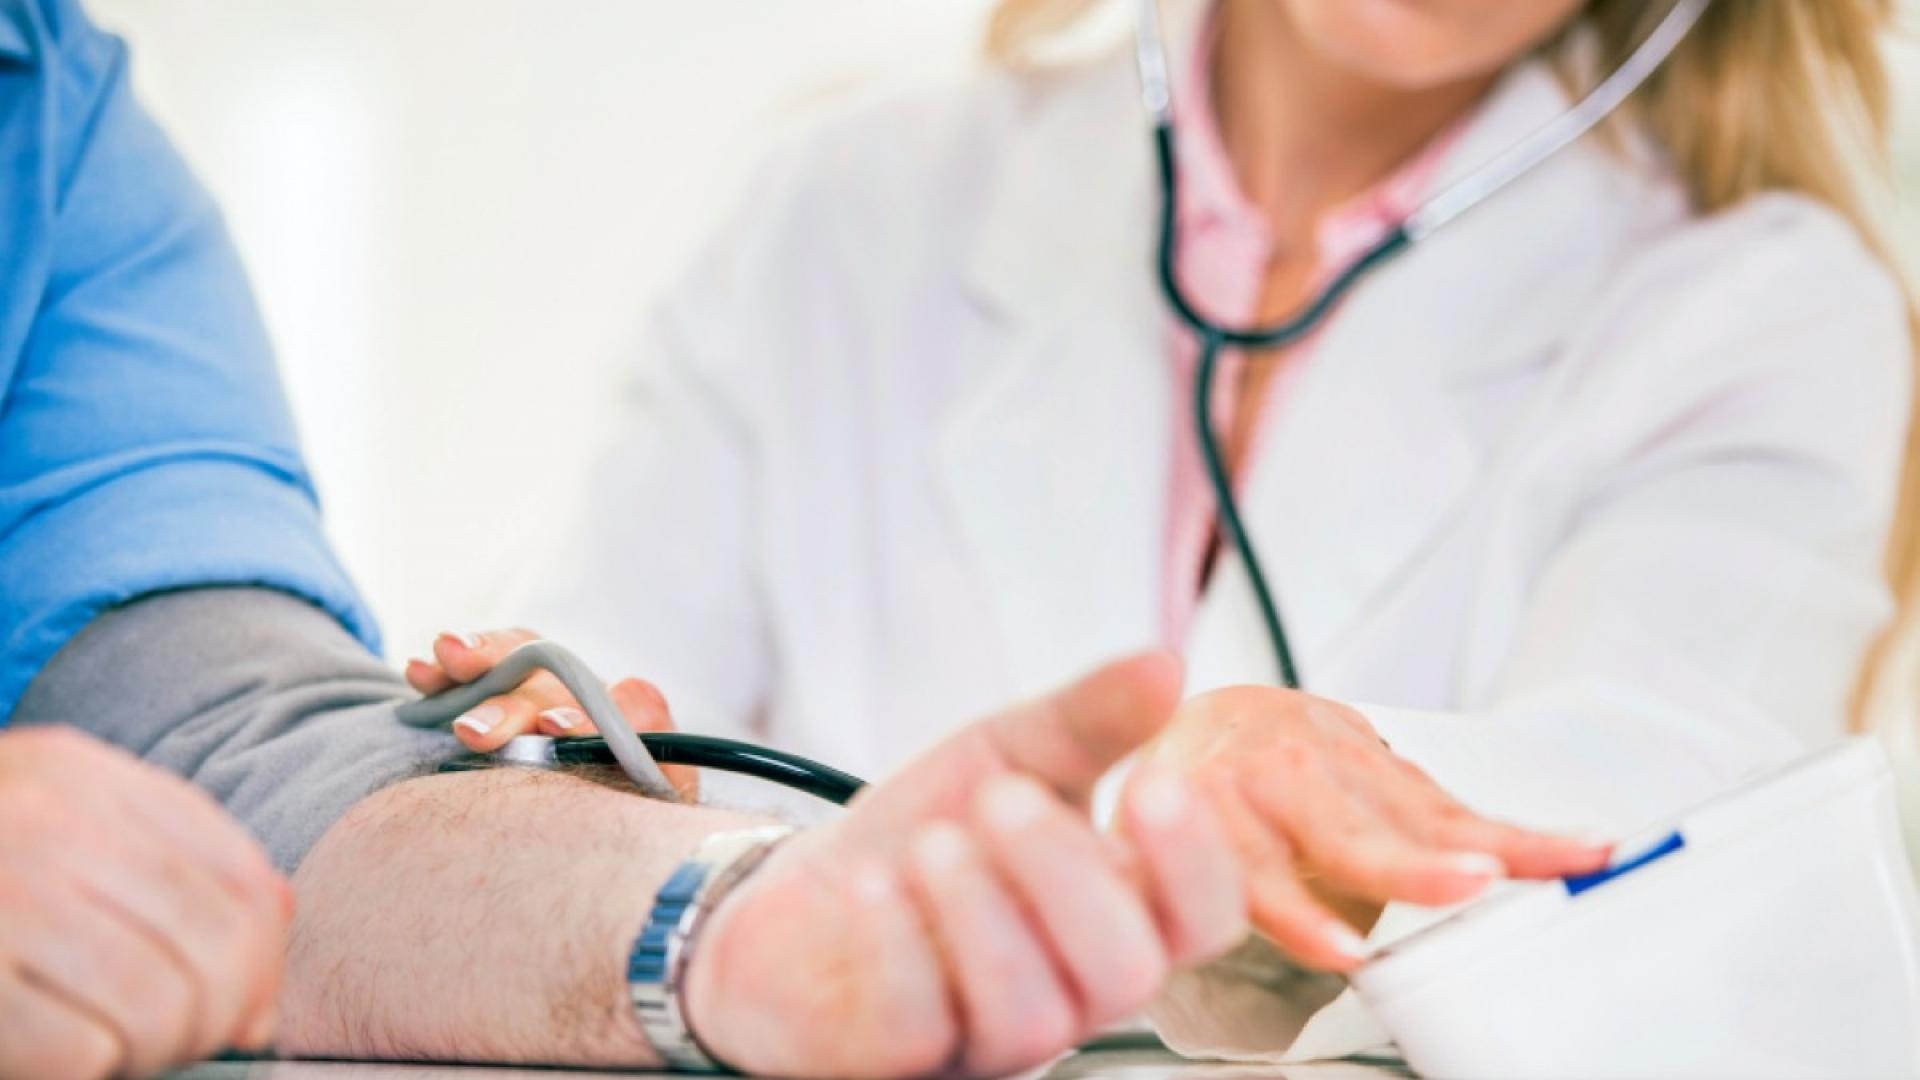 Study highlights importance of using both arms for blood pressure